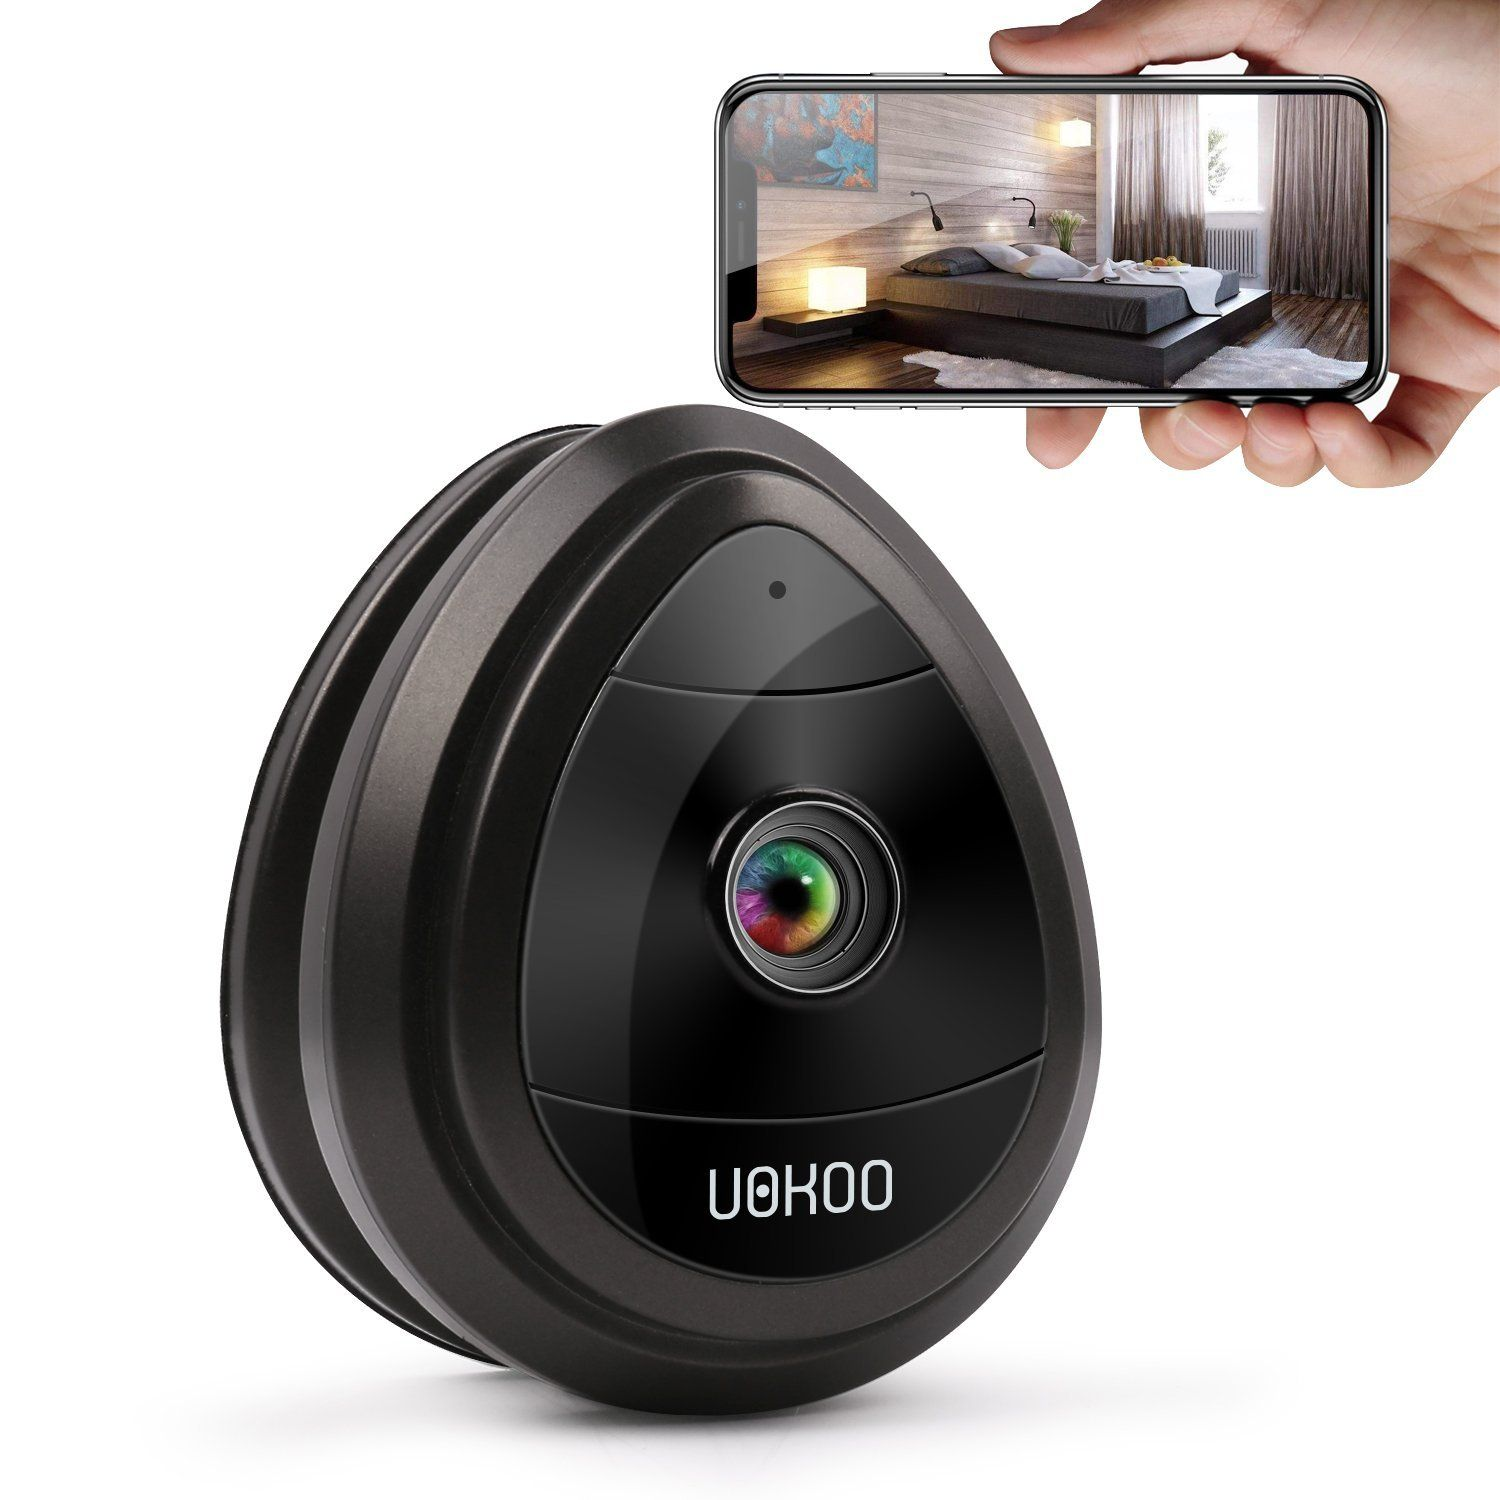 Best Outdoor Security Cameras 2019 Wireless Wireless IP Home Surveillance Security Camera System with Motion